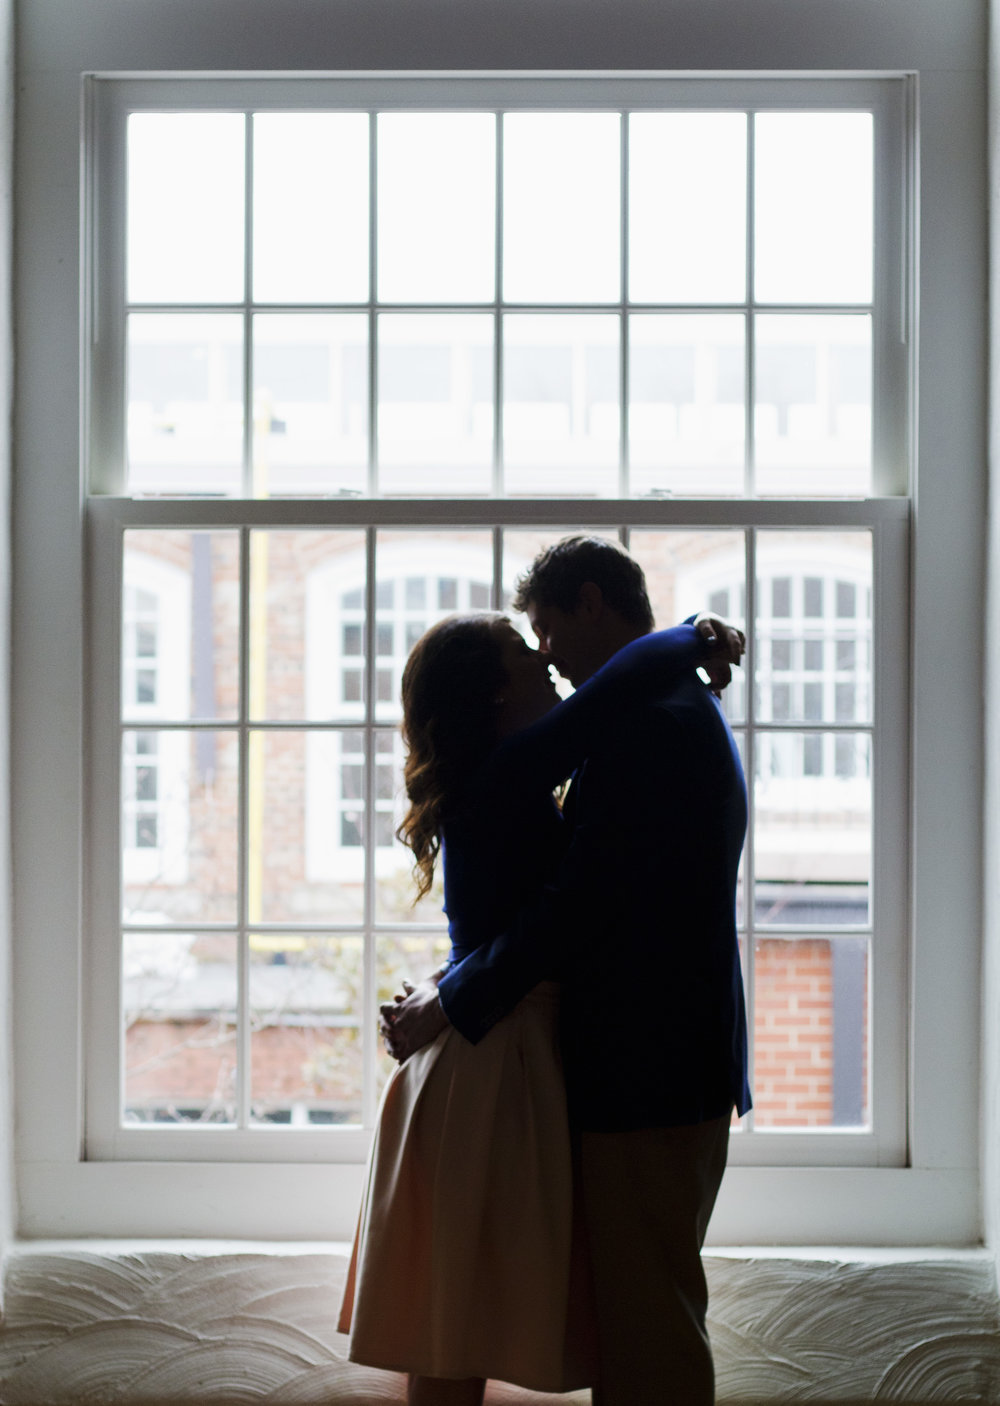 Romantic Engagement Photography at Revolution Mills Event Center Greensboro, NC in front of window. Winston Salem and Kernersville Wedding Photographer  Navy and pink color scheme coordination  Kissing sillhuette